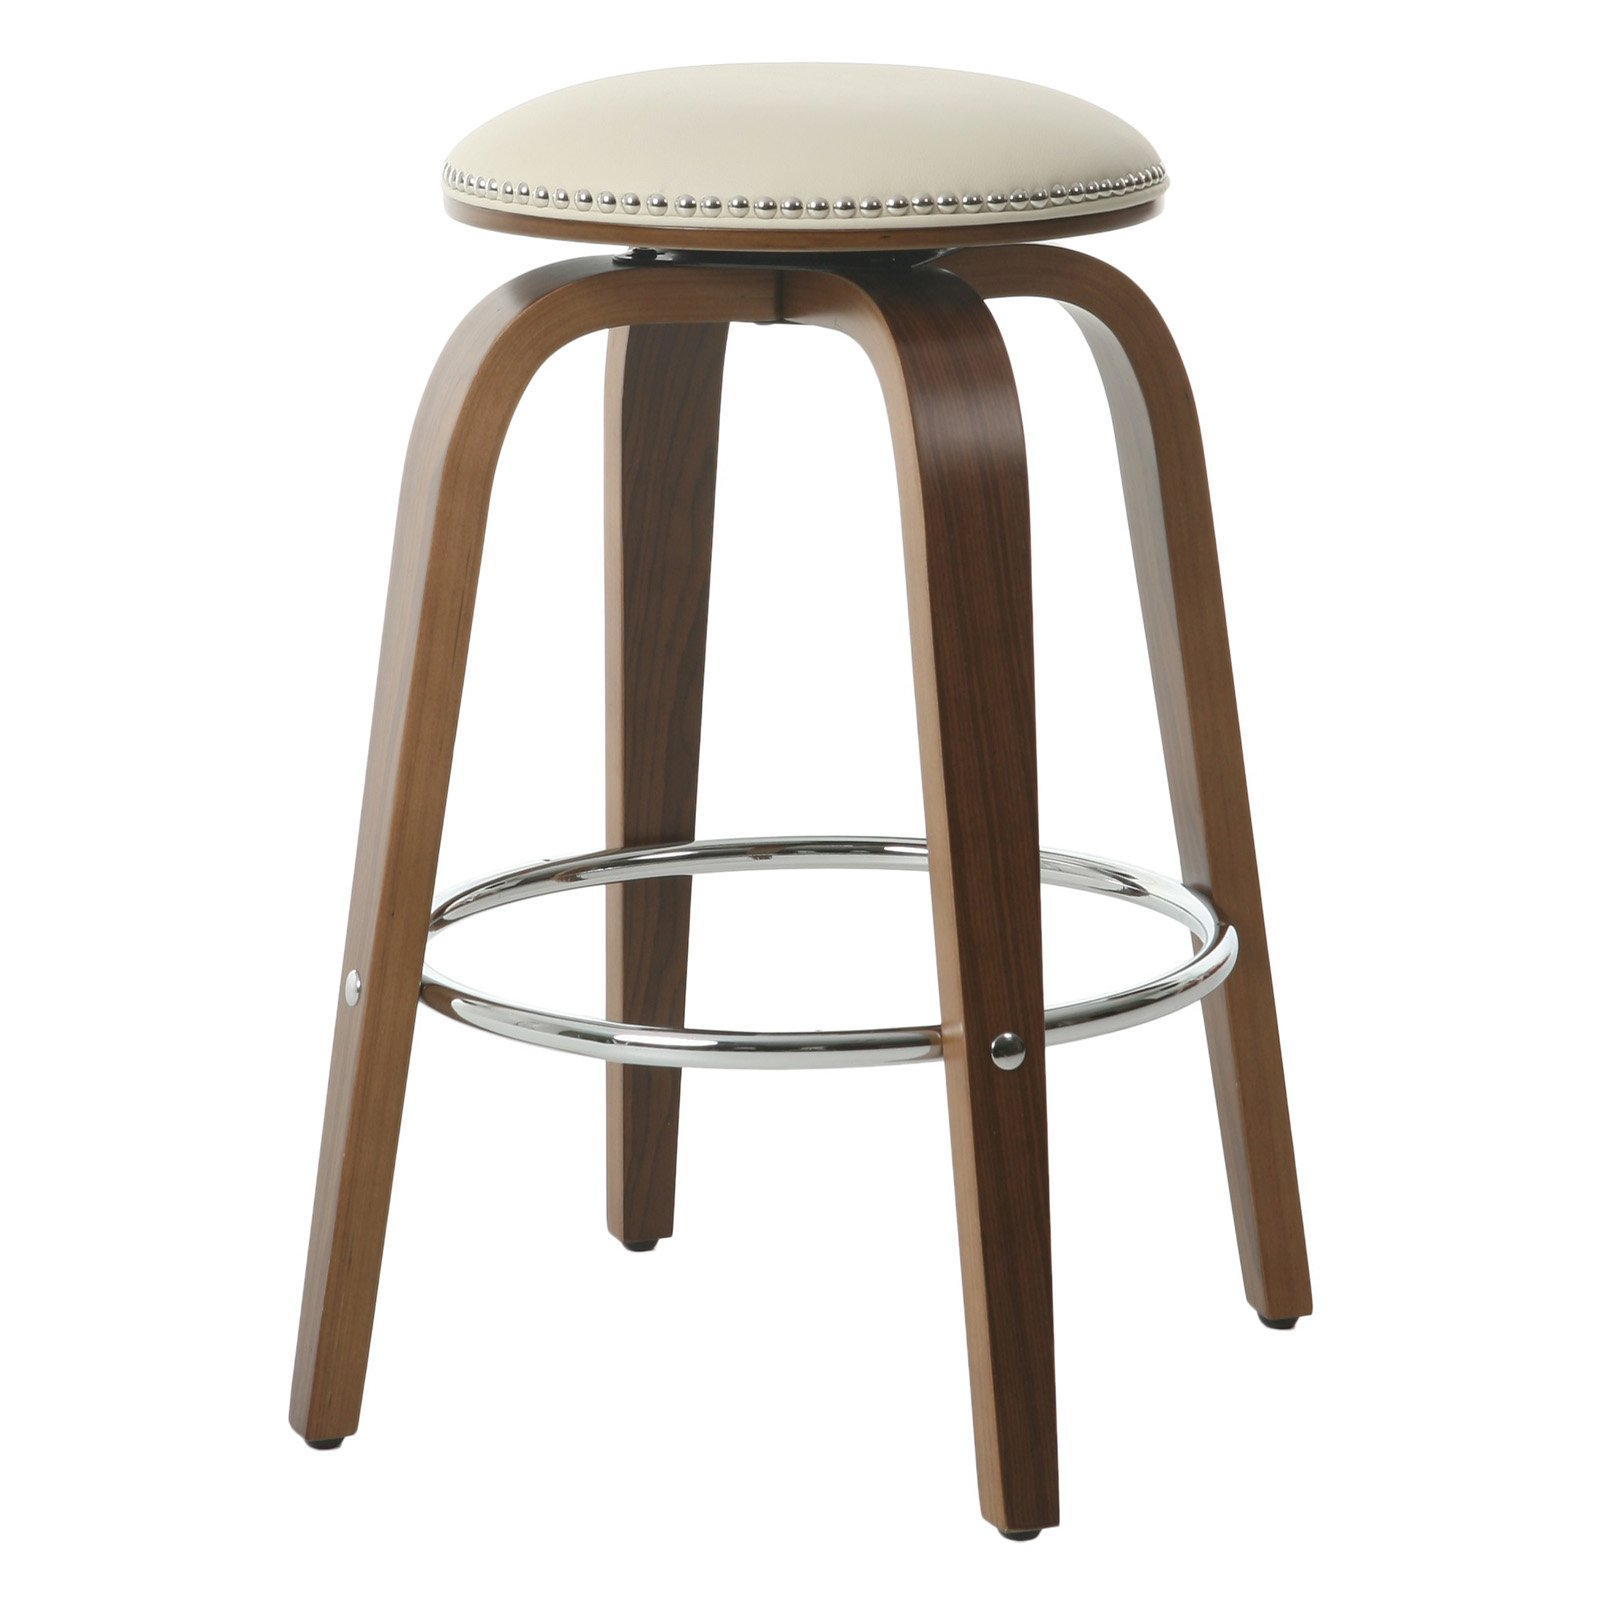 Impacterra Yeri 27 in. Backless Counter Stool